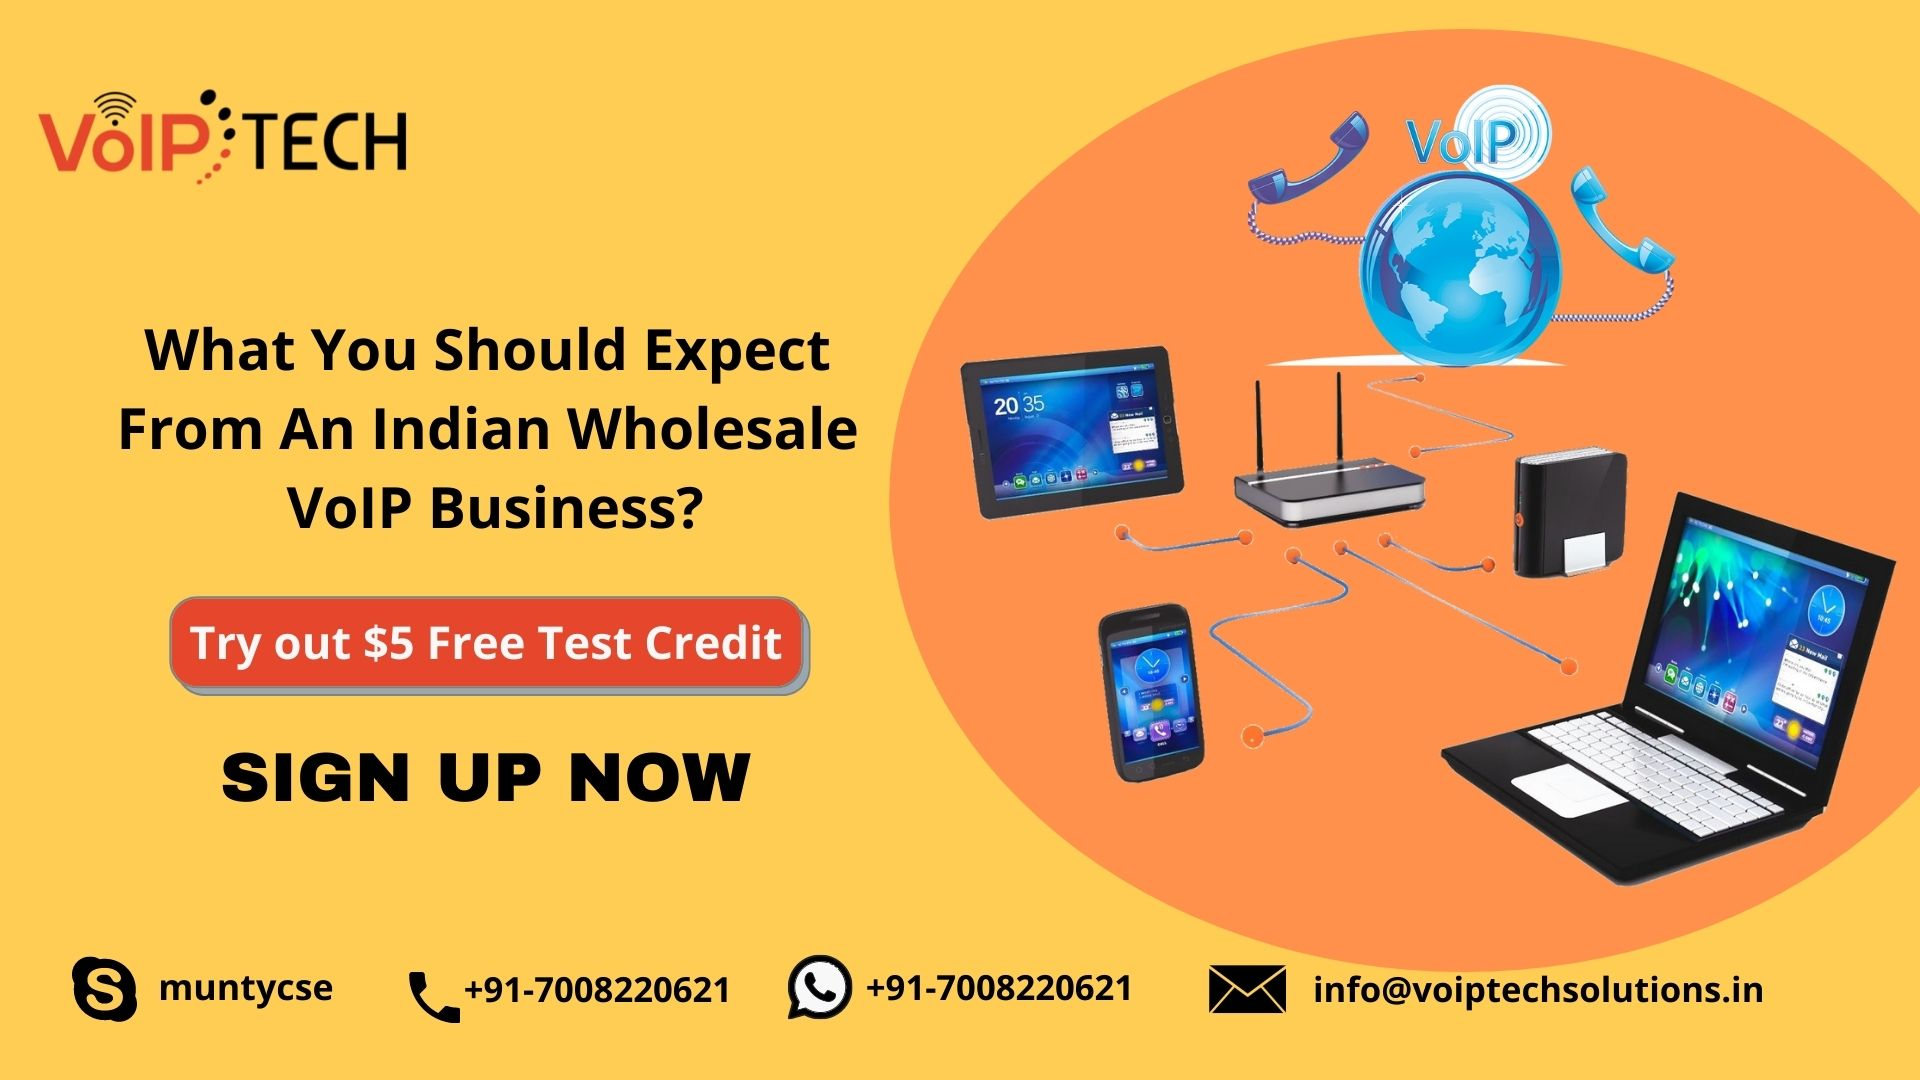 Wholesale VoIP Business, What You Should Expect From An Indian Wholesale VoIP Business?, VoIP tech solutions, vici dialer, virtual number, Voip Providers, voip services in india, best sip provider, business voip providers, VoIP Phone Numbers, voip minutes provider, top voip providers, voip minutes, International VoIP Provider